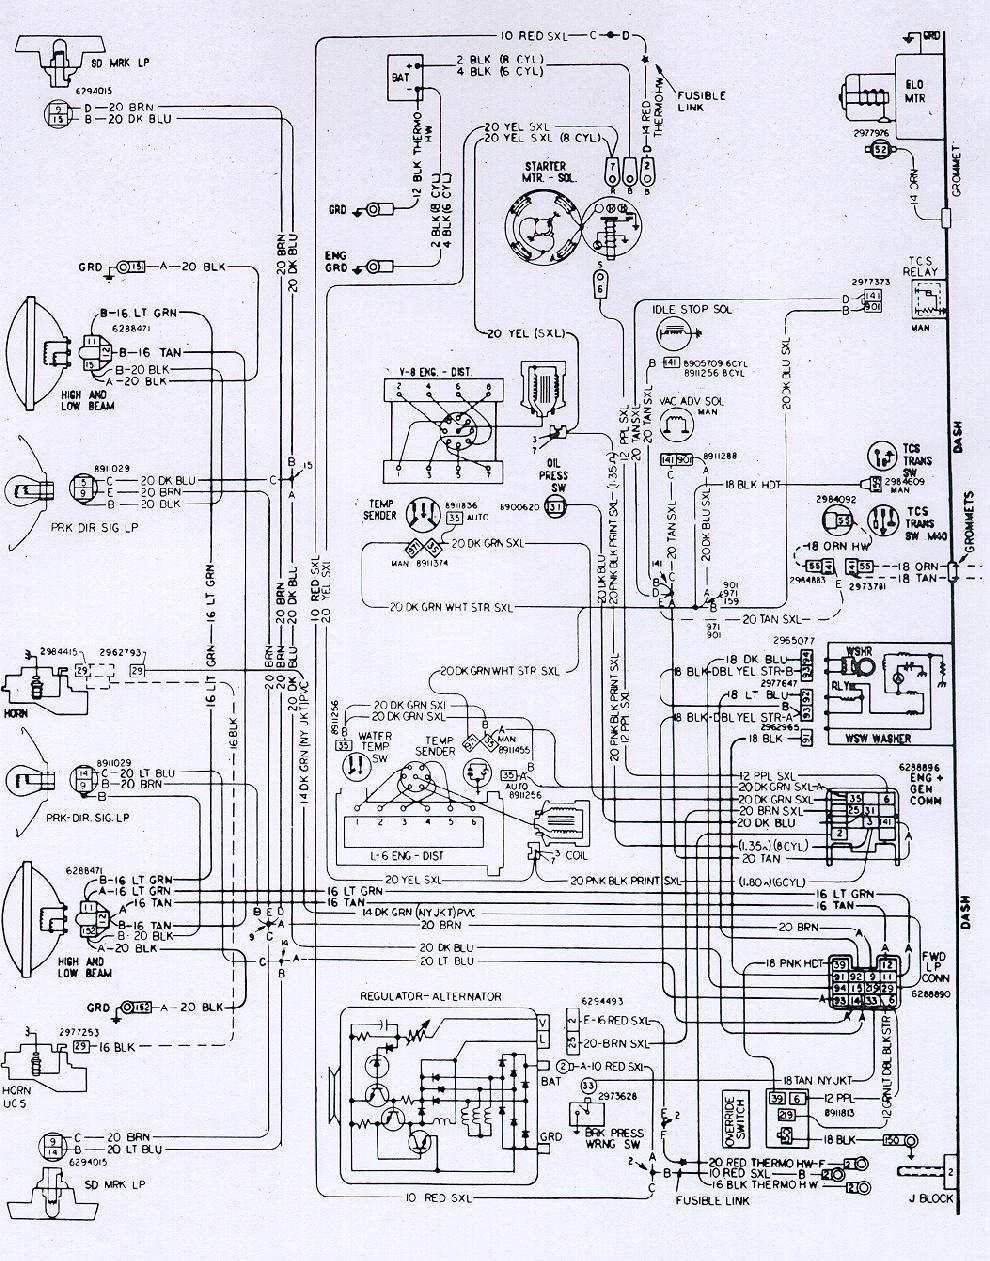 medium resolution of wiring diagram of a 1991 chevy camaro wiring diagram expert 1991 chevy camaro wiring